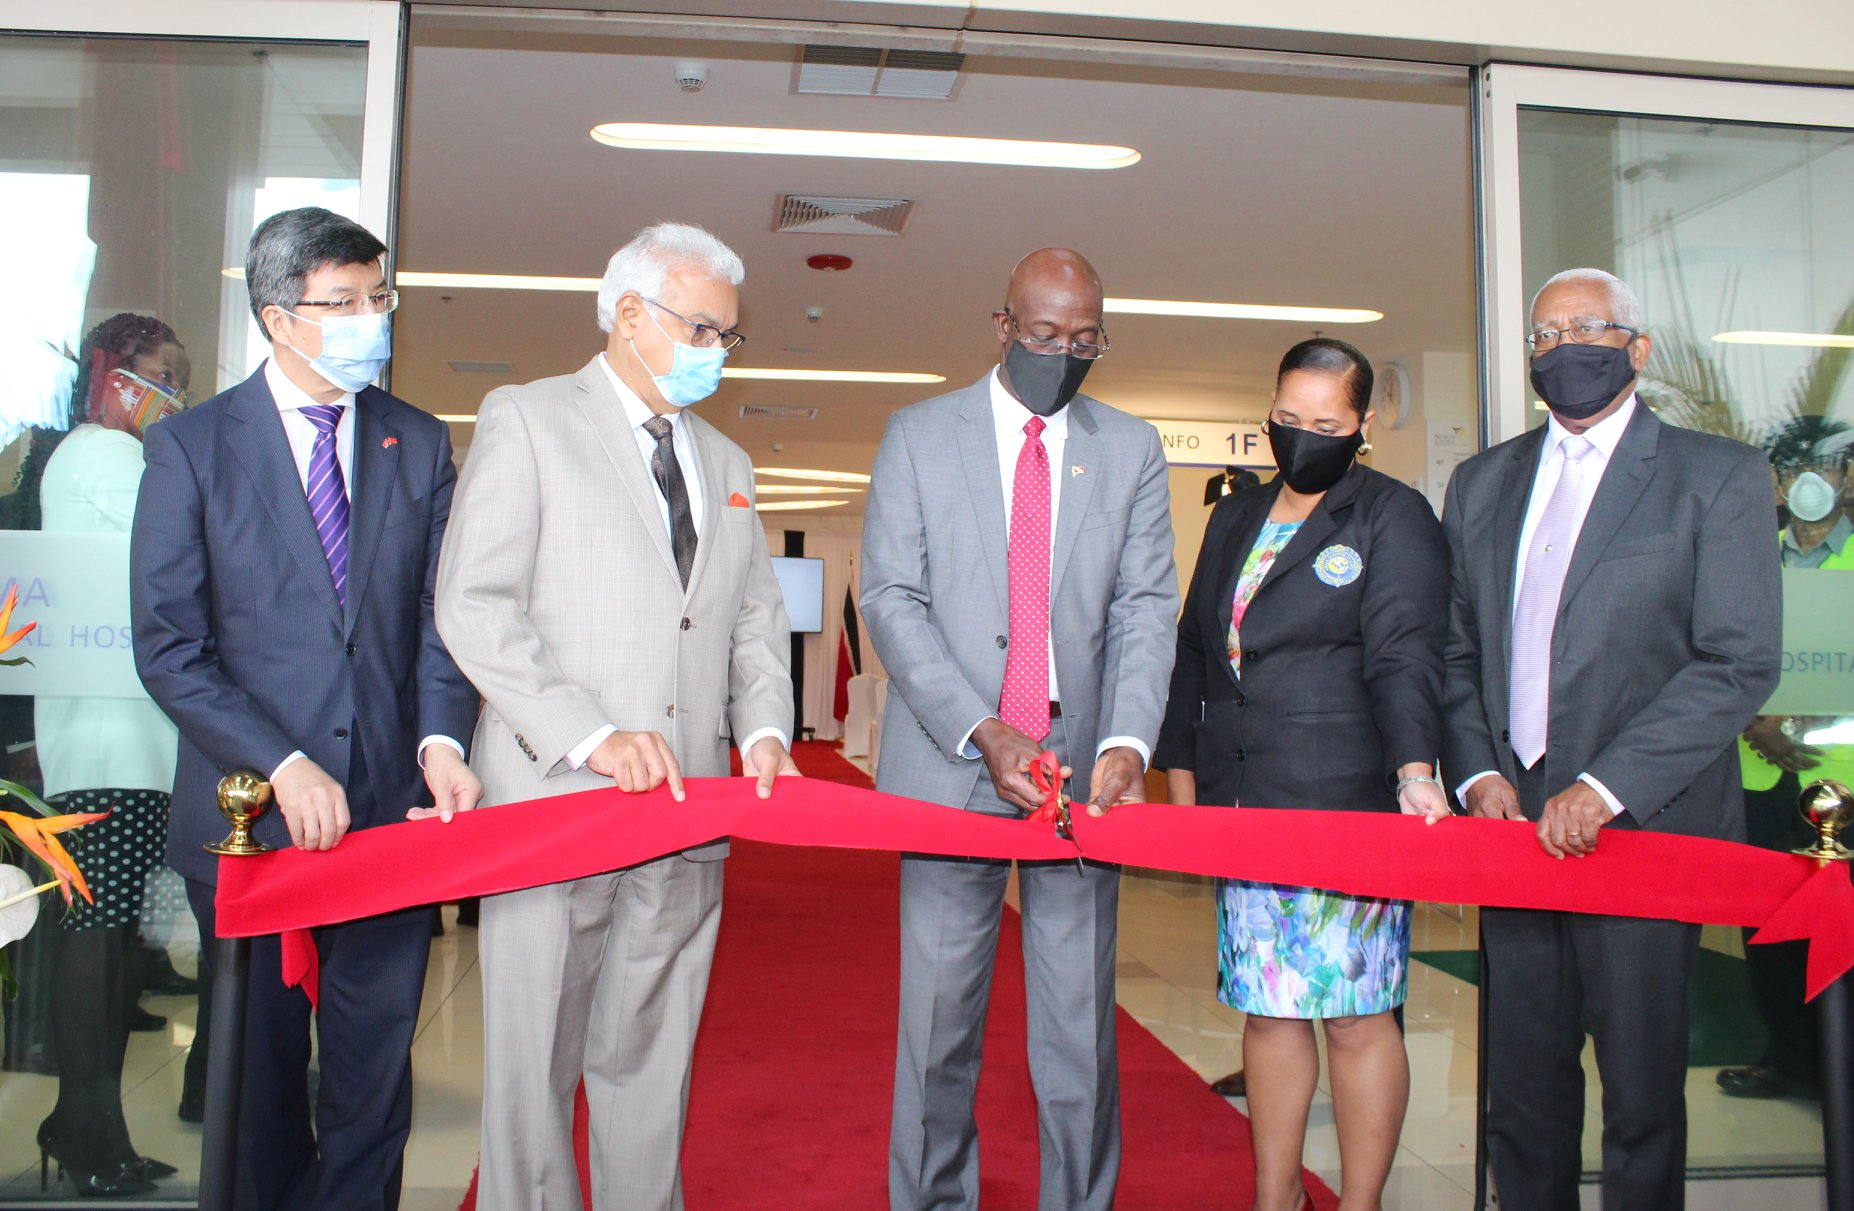 From left, His Excellency Song Yumin, Ambassador of the People's Republic of China to Trinidad and Tobago, Health Minister Terrence Deyalsingh, Prime Minister Dr Keith Rowley, Arima Mayor Lisa Morris-Julien and Arima MP Anthony Garcia. (via OPM)